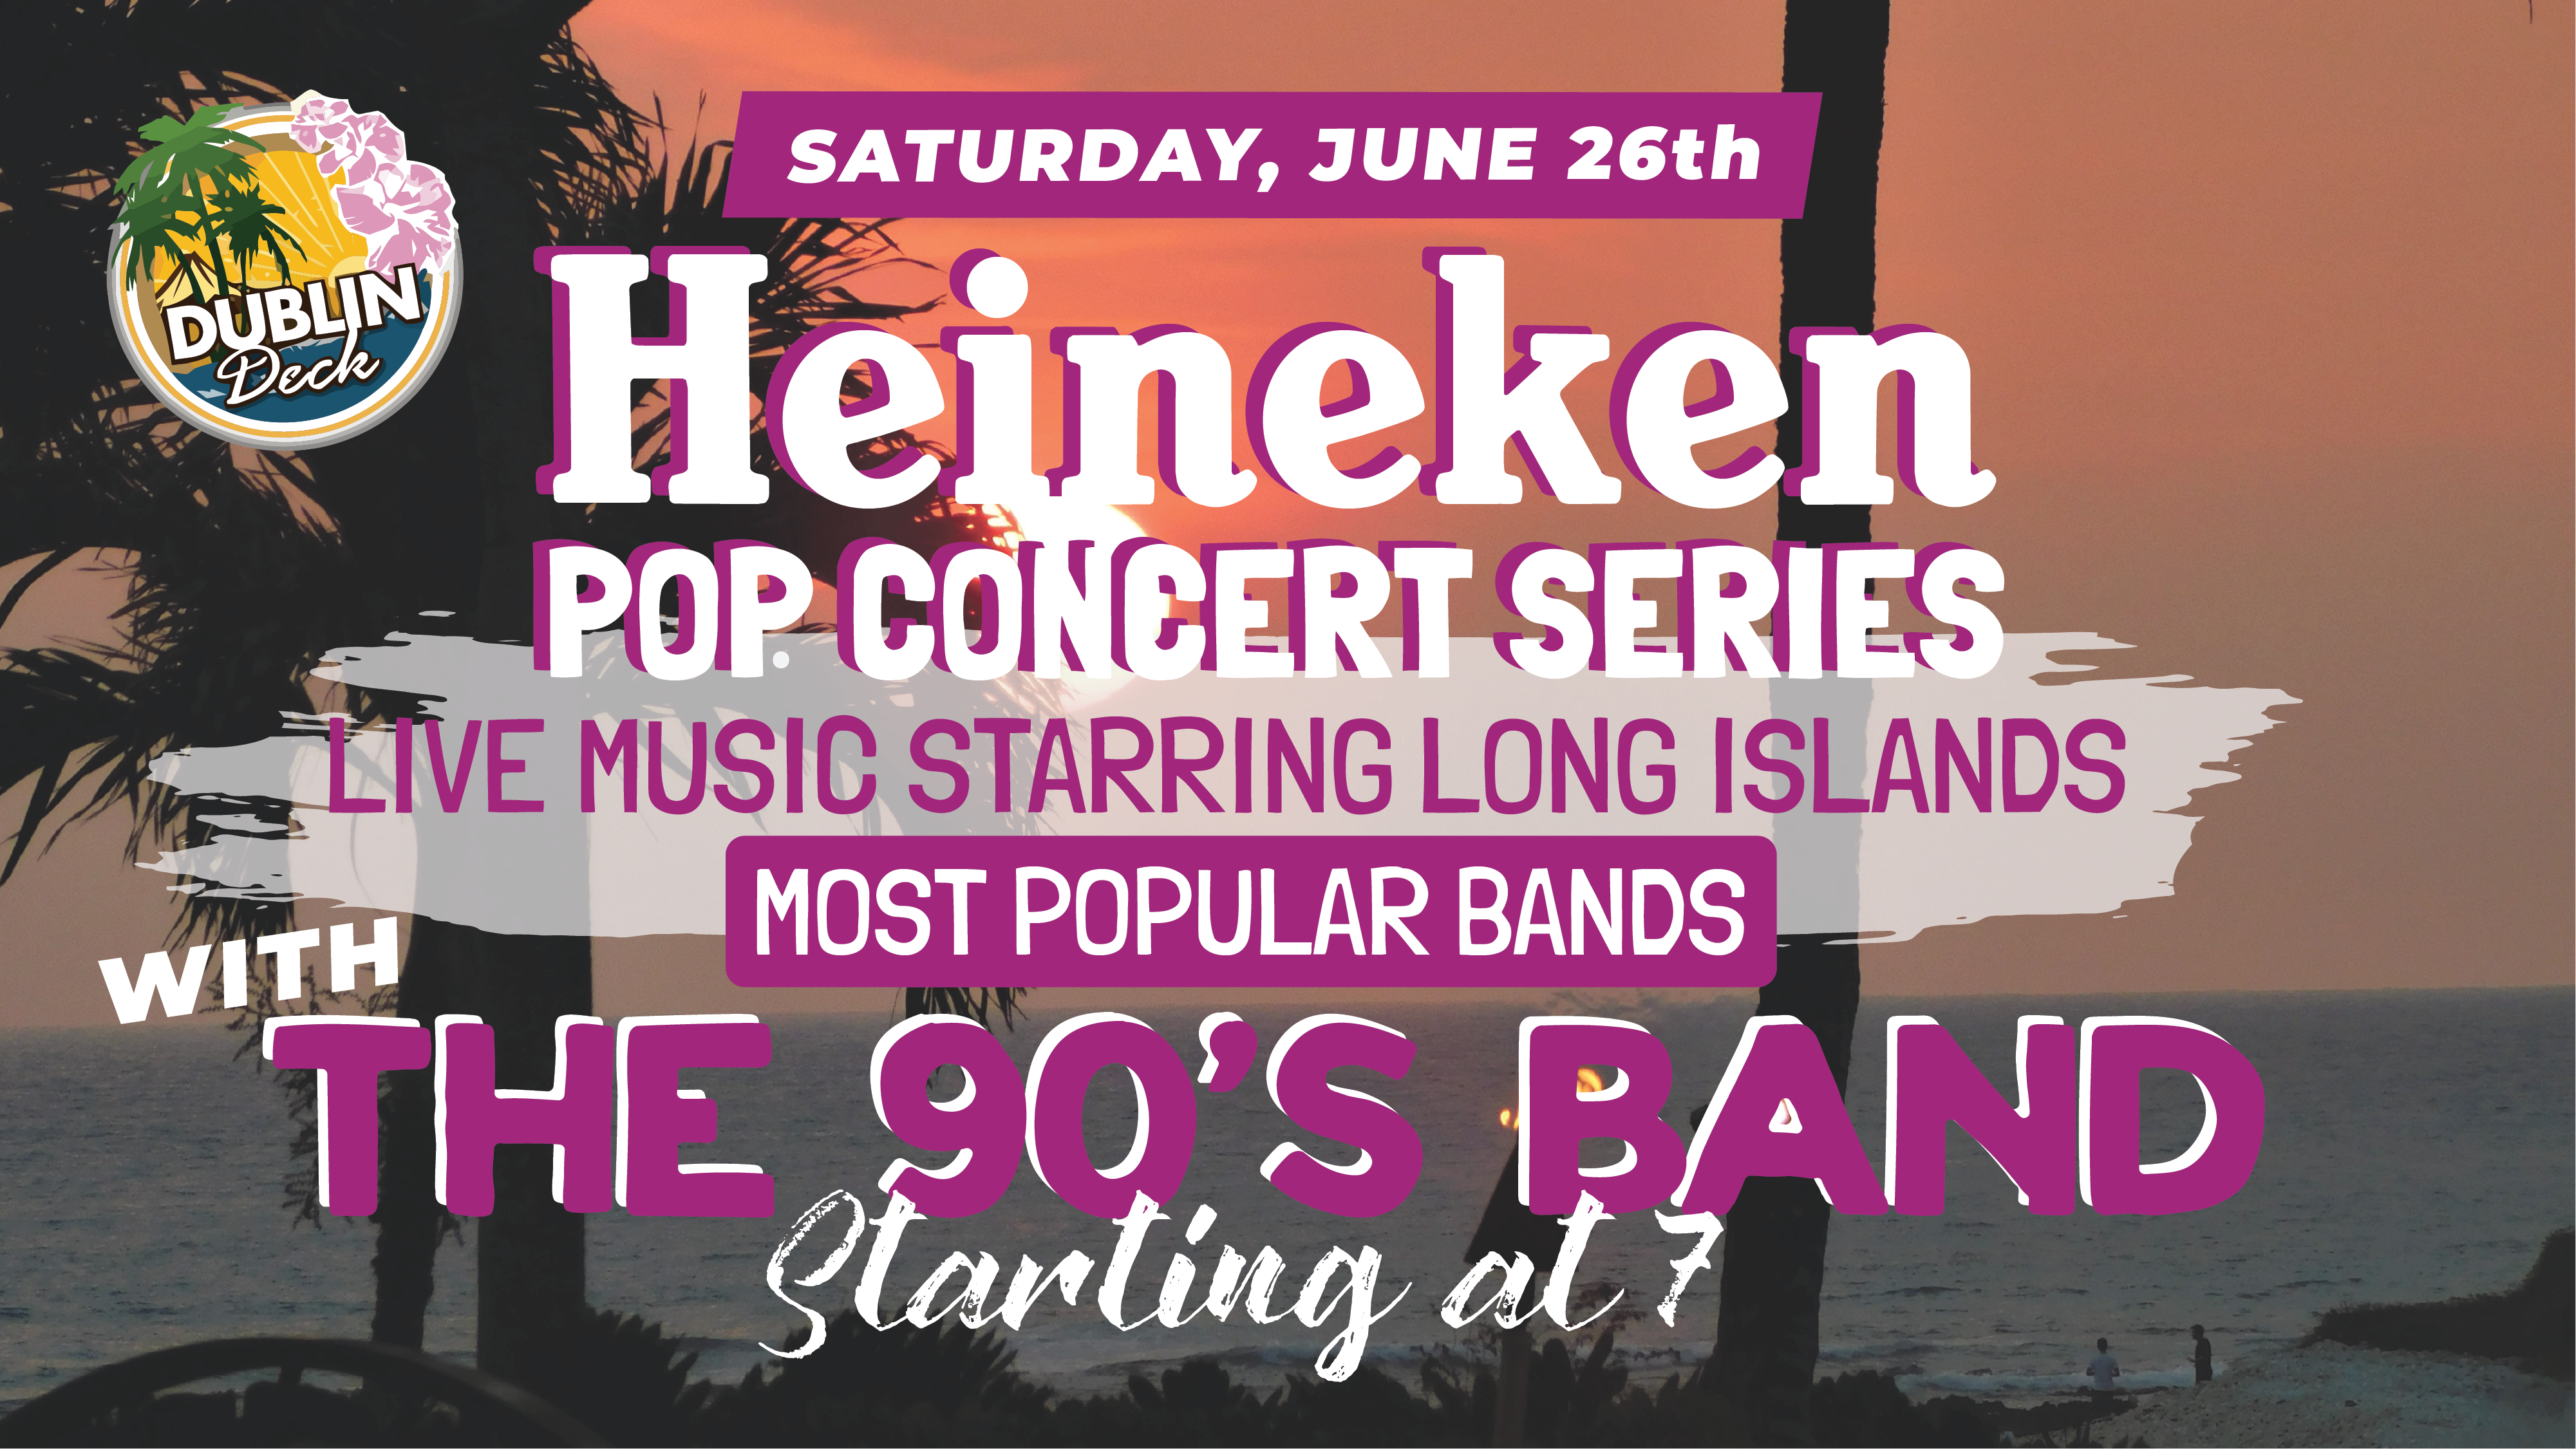 Live Music with The 90's Band